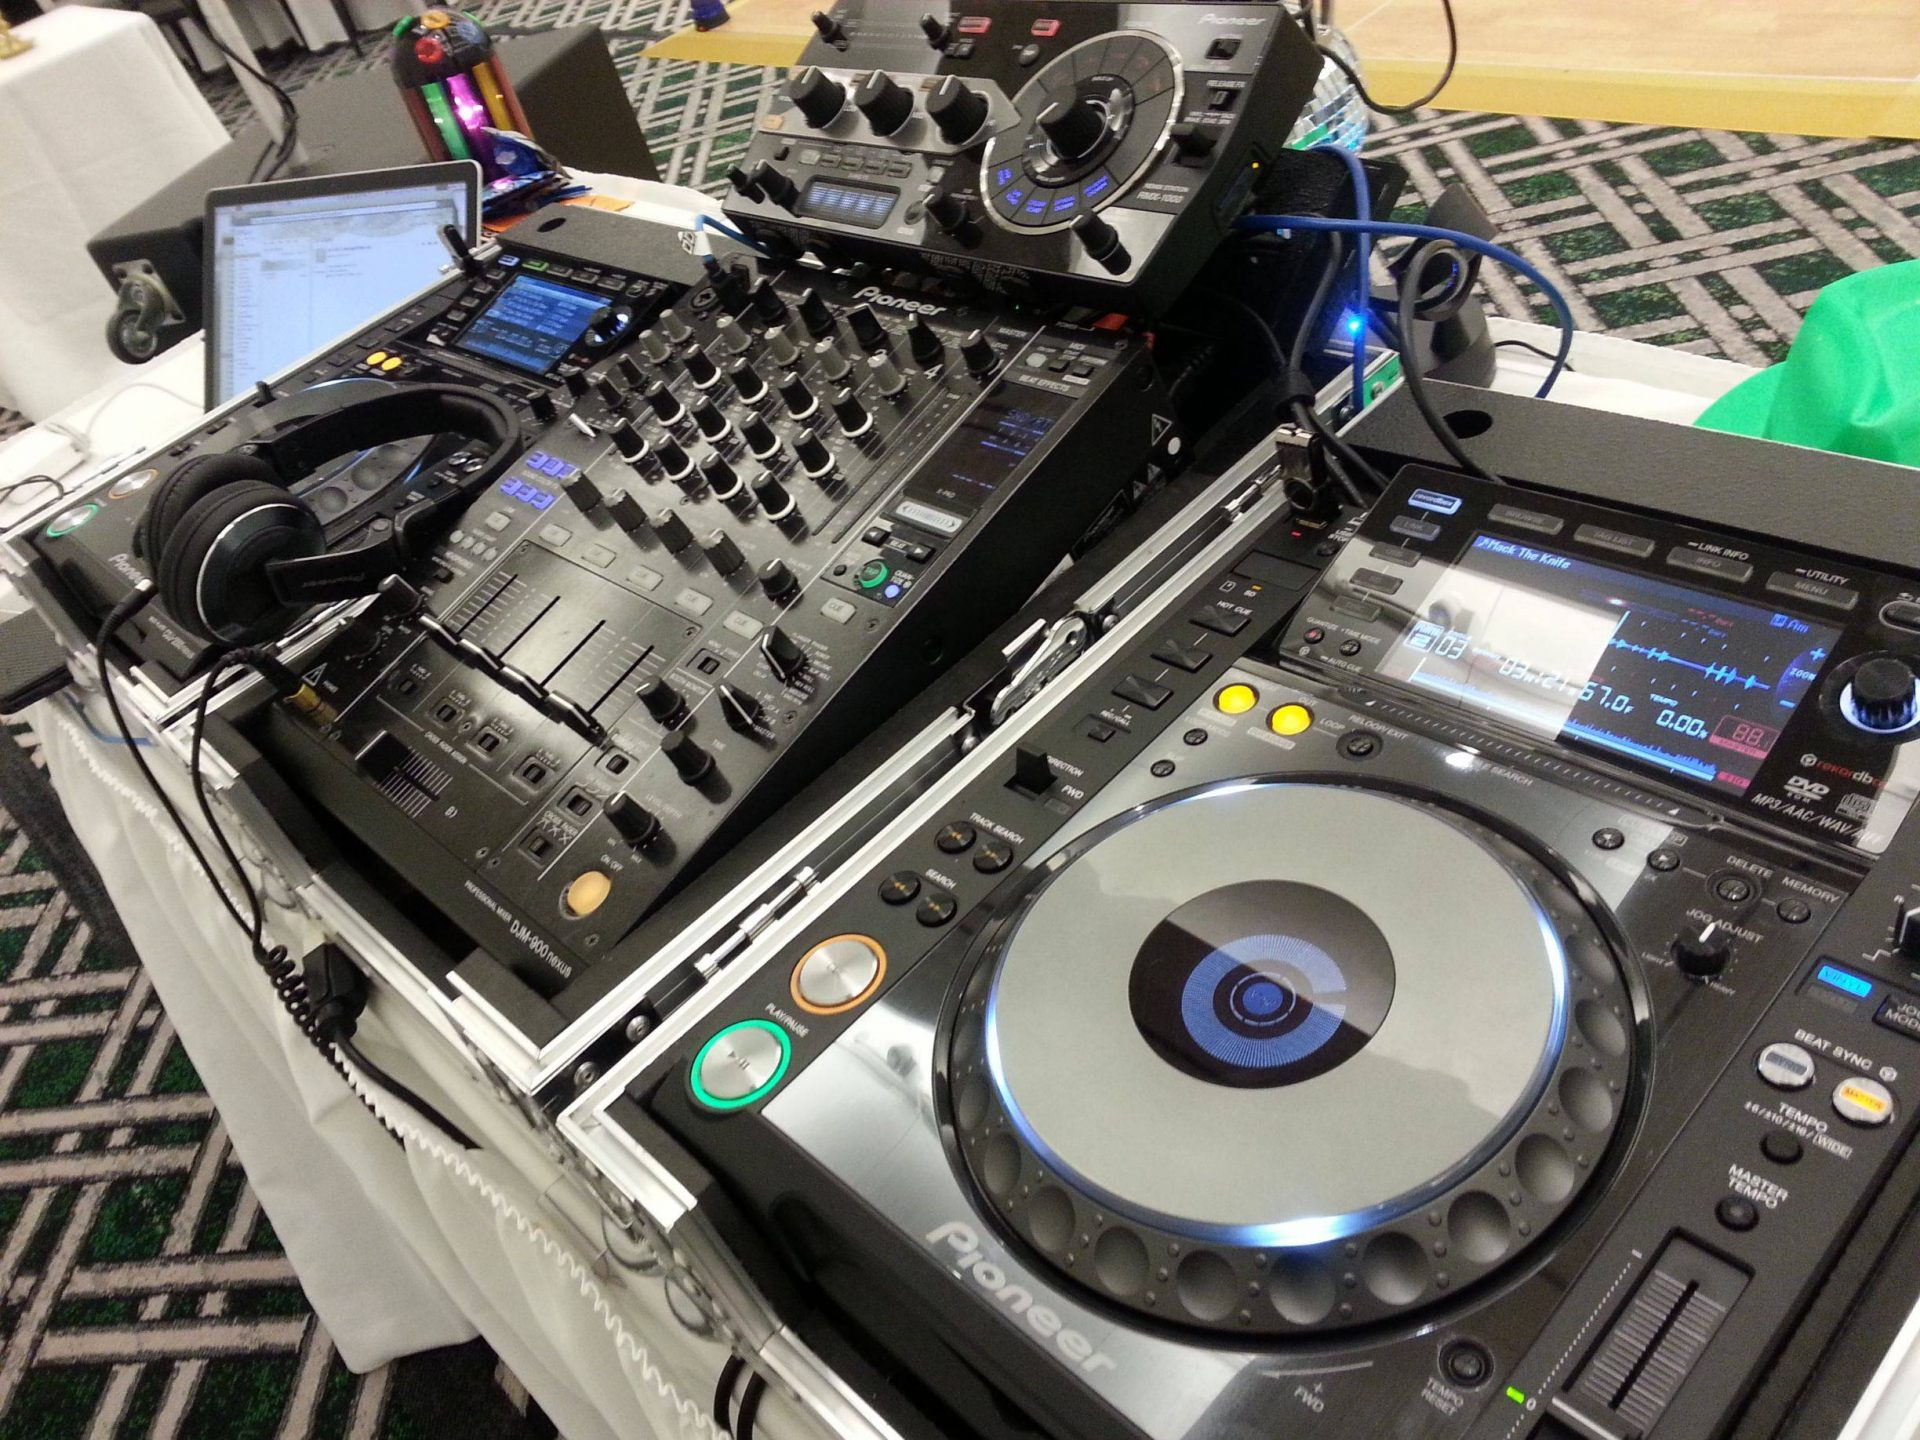 Top 5 DJ Setups (According to Reddit's /DJSetups) - BPM Supreme